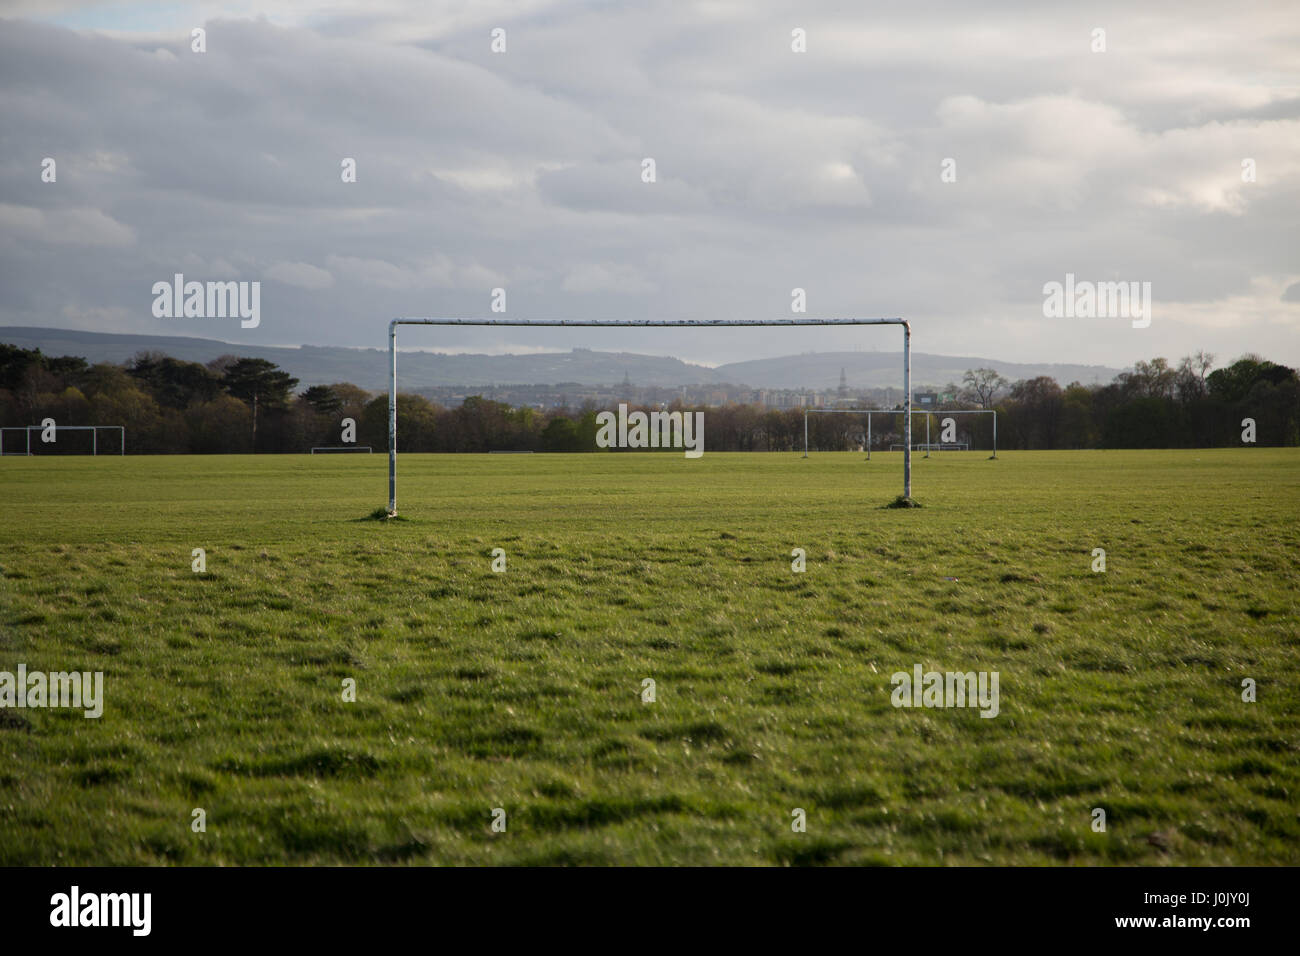 Goalposts on a football pitch. - Stock Image